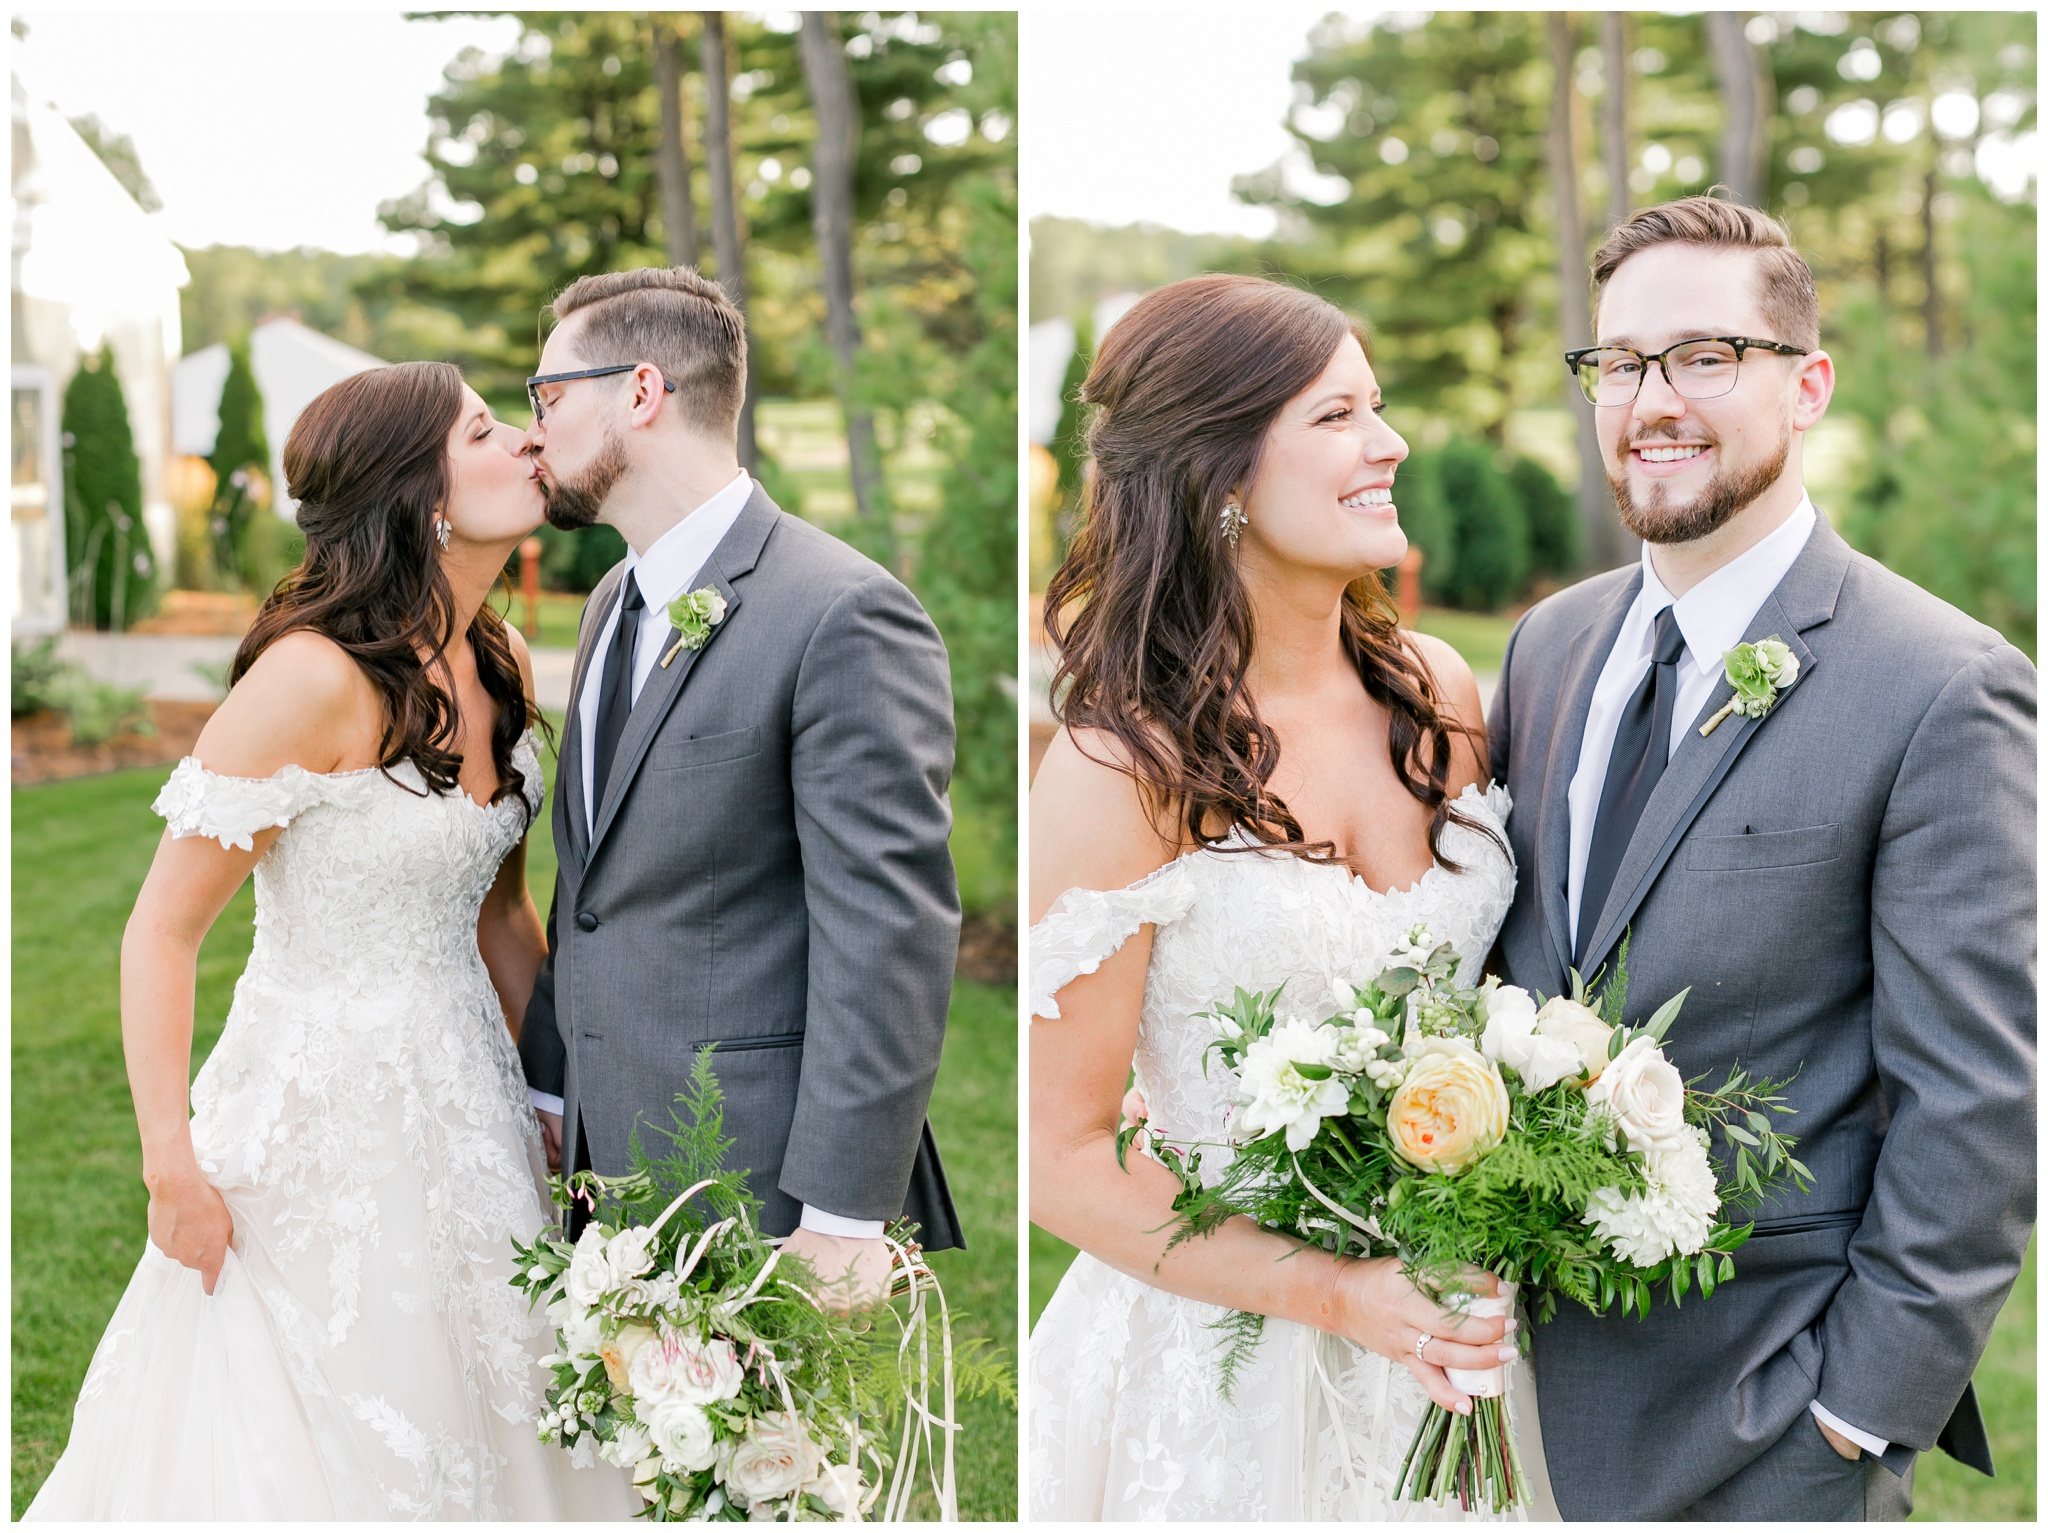 bishops_bay_country_club_wedding_middleton_wisconsin_caynay_photo_4729.jpg